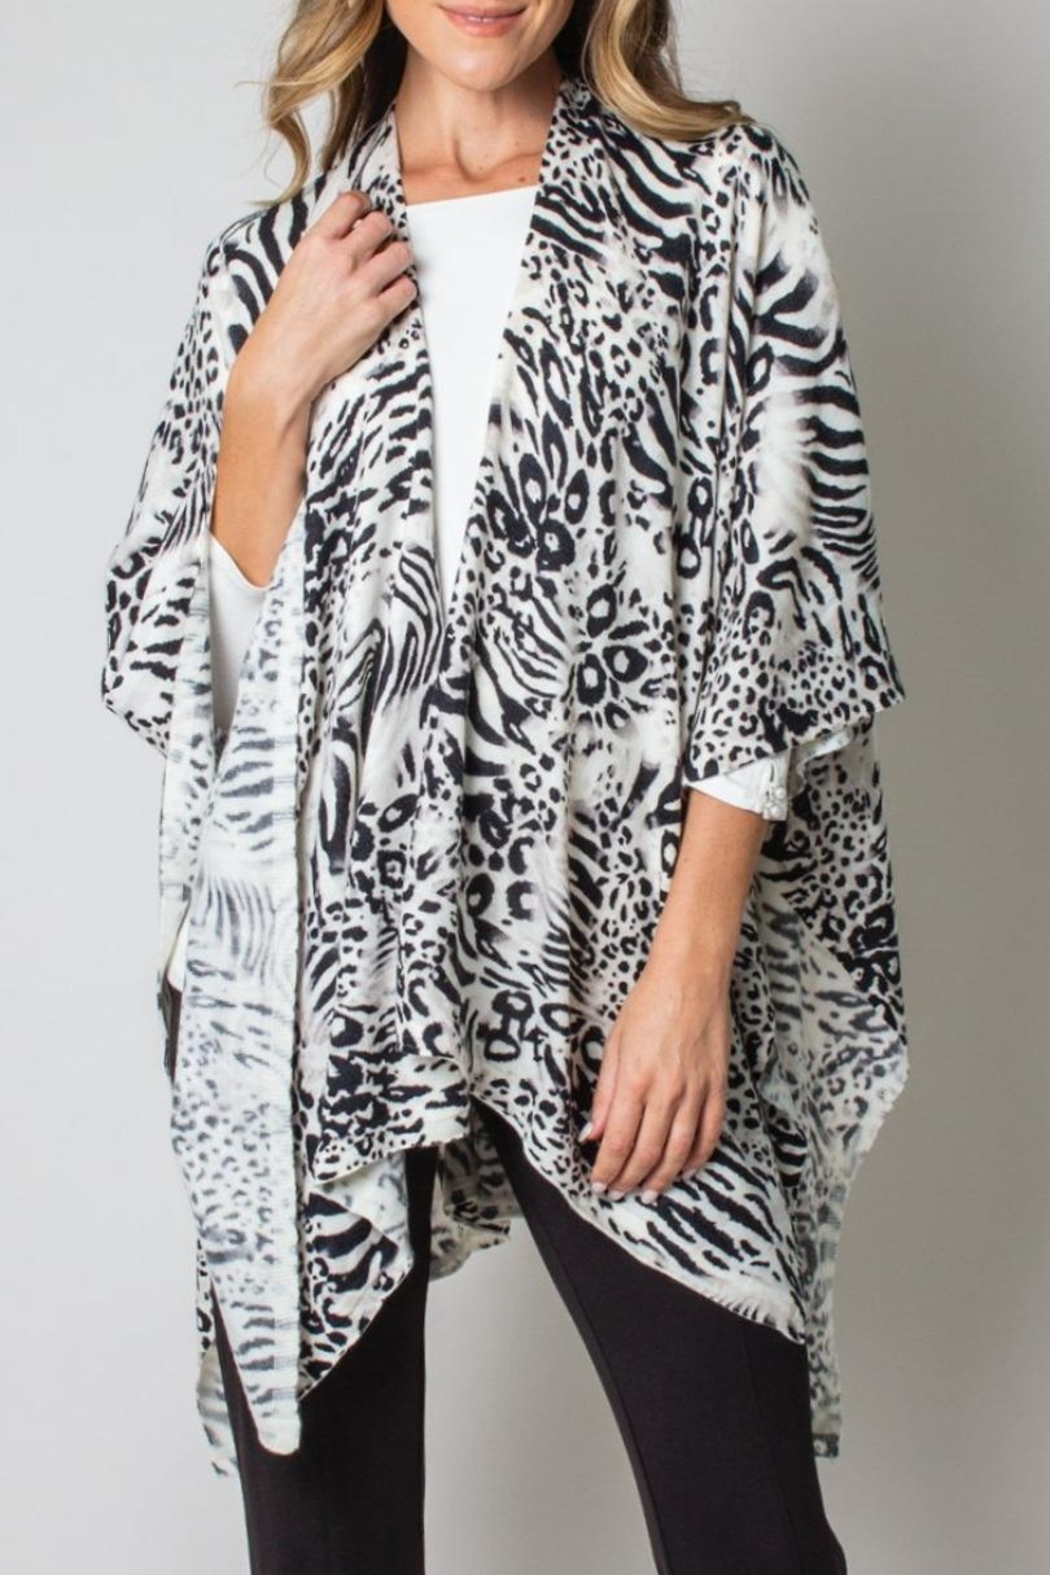 Simply Noelle Bordeaux Cardi Wrap Poncho Black And White Leopard - Main Image